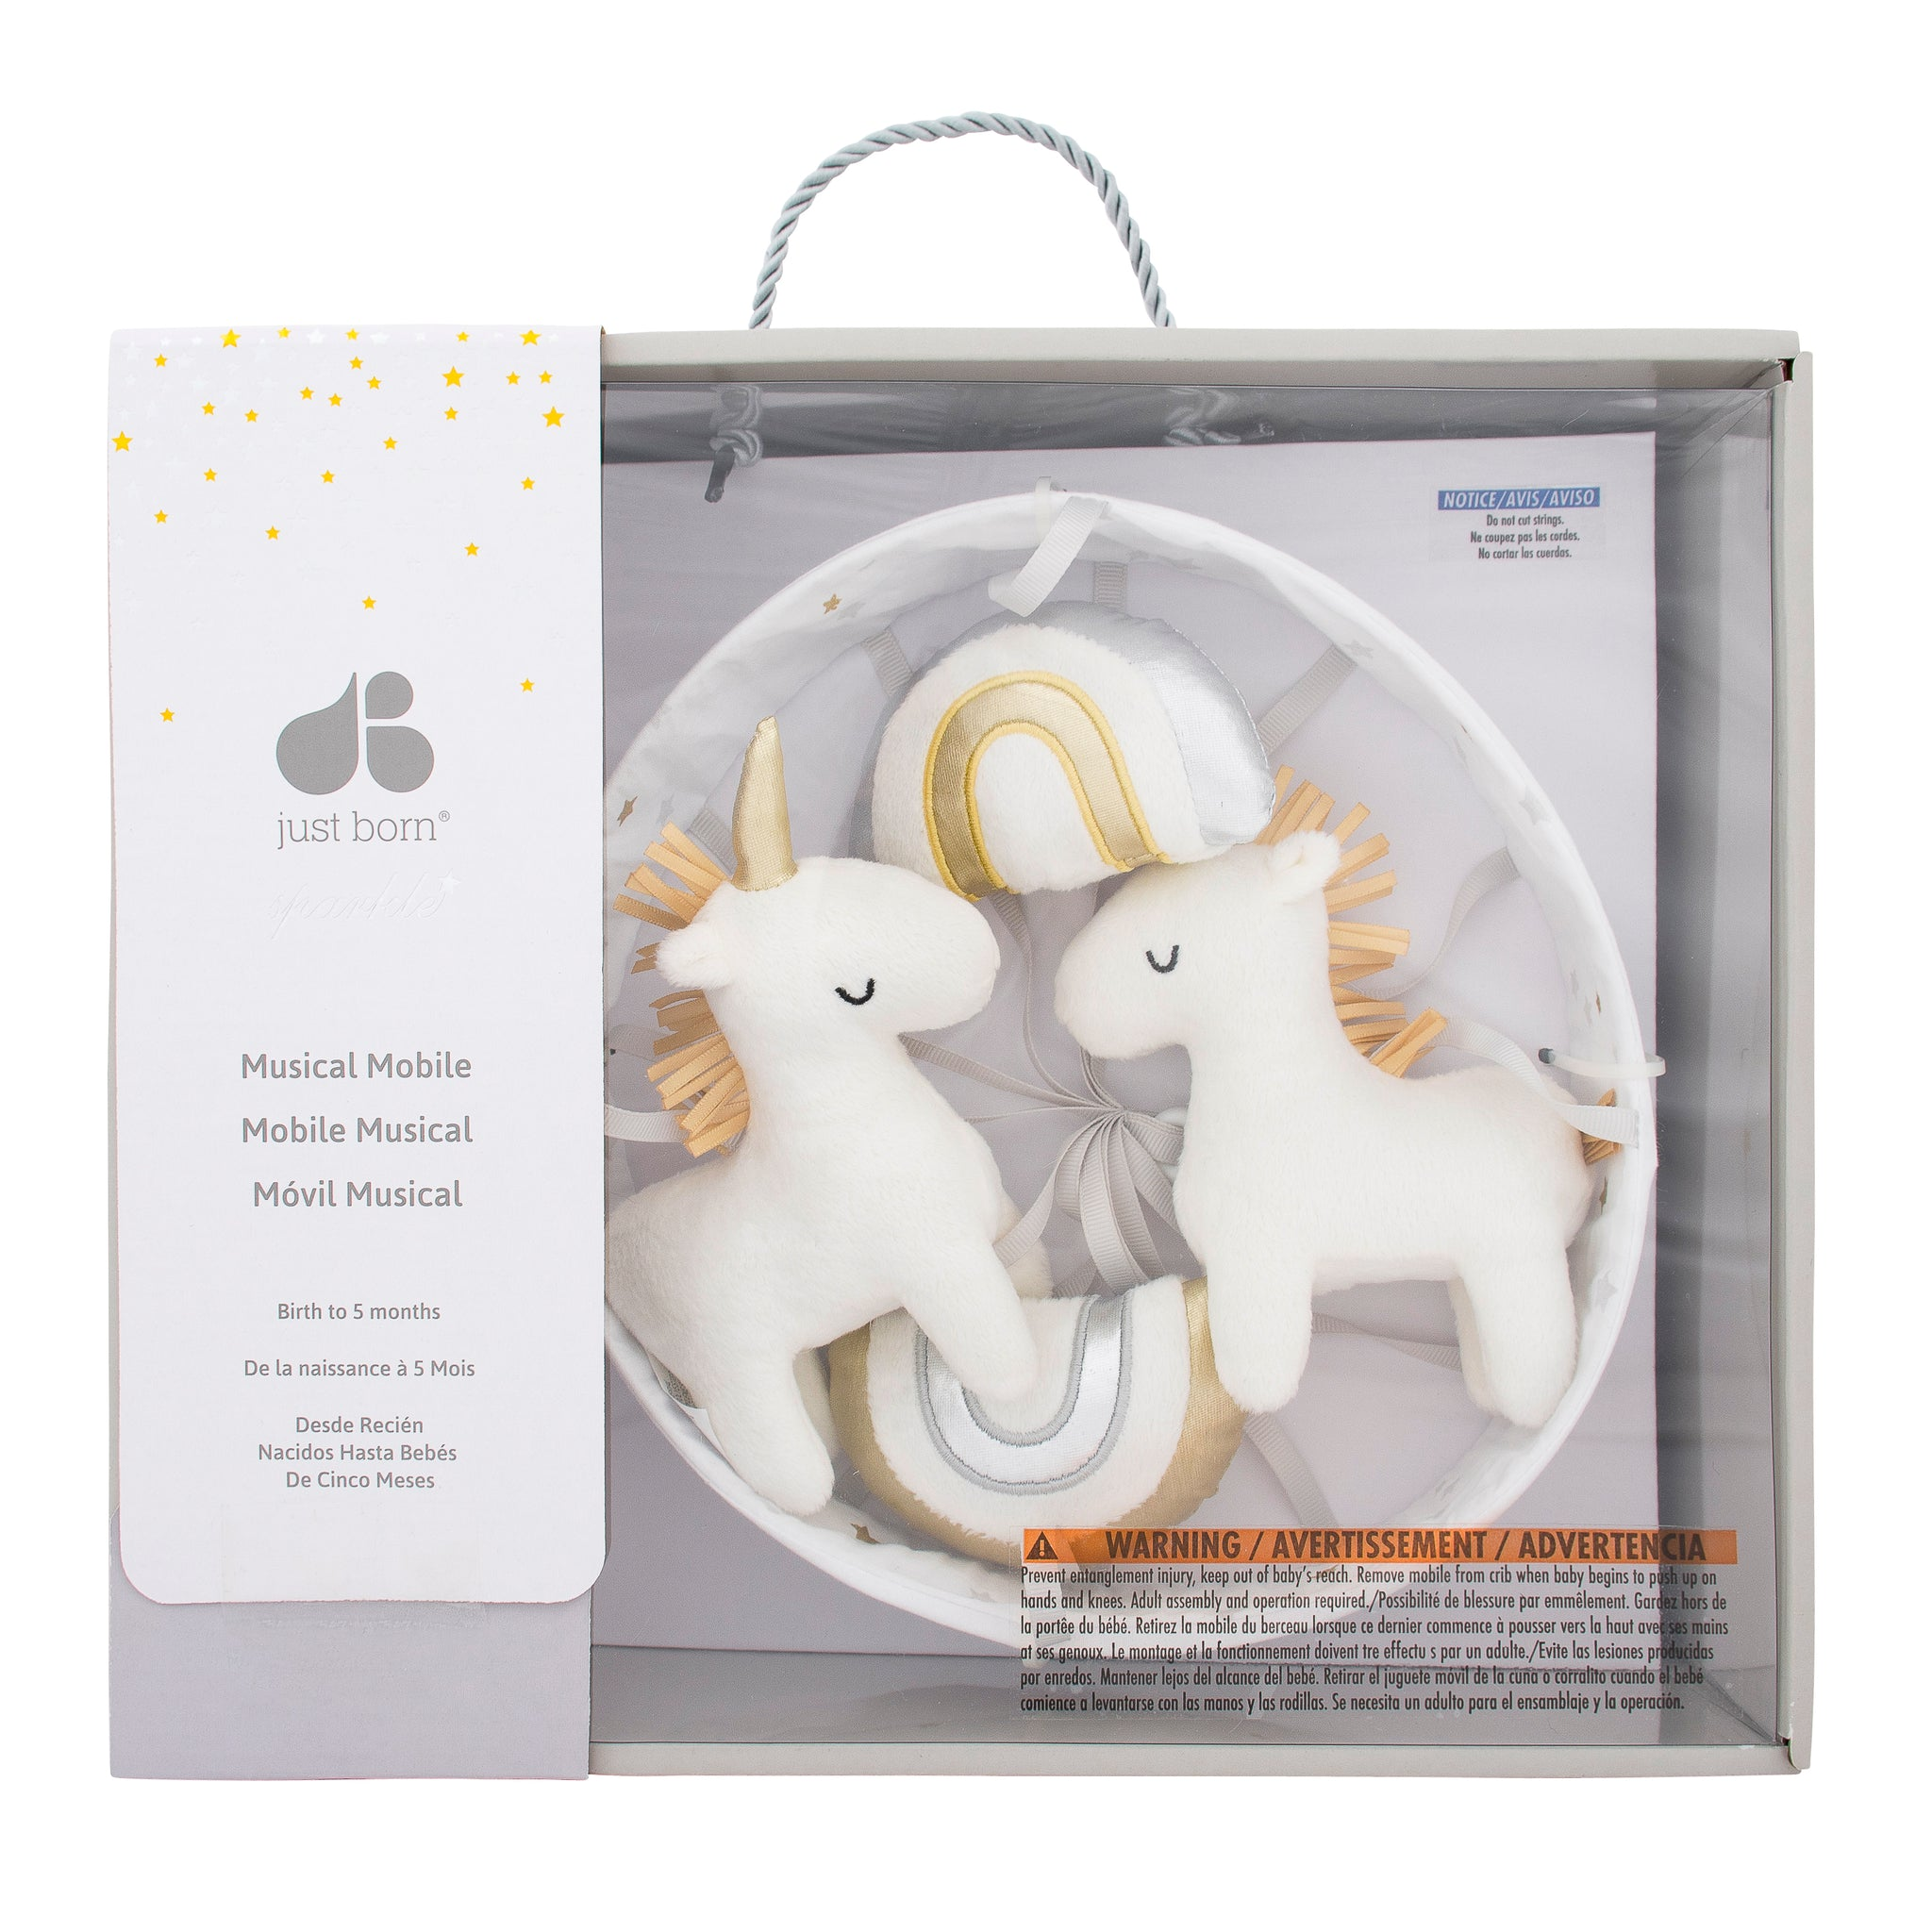 Baby Neutral Unicorns & Rainbows Mobile-Gerber Childrenswear Wholesale